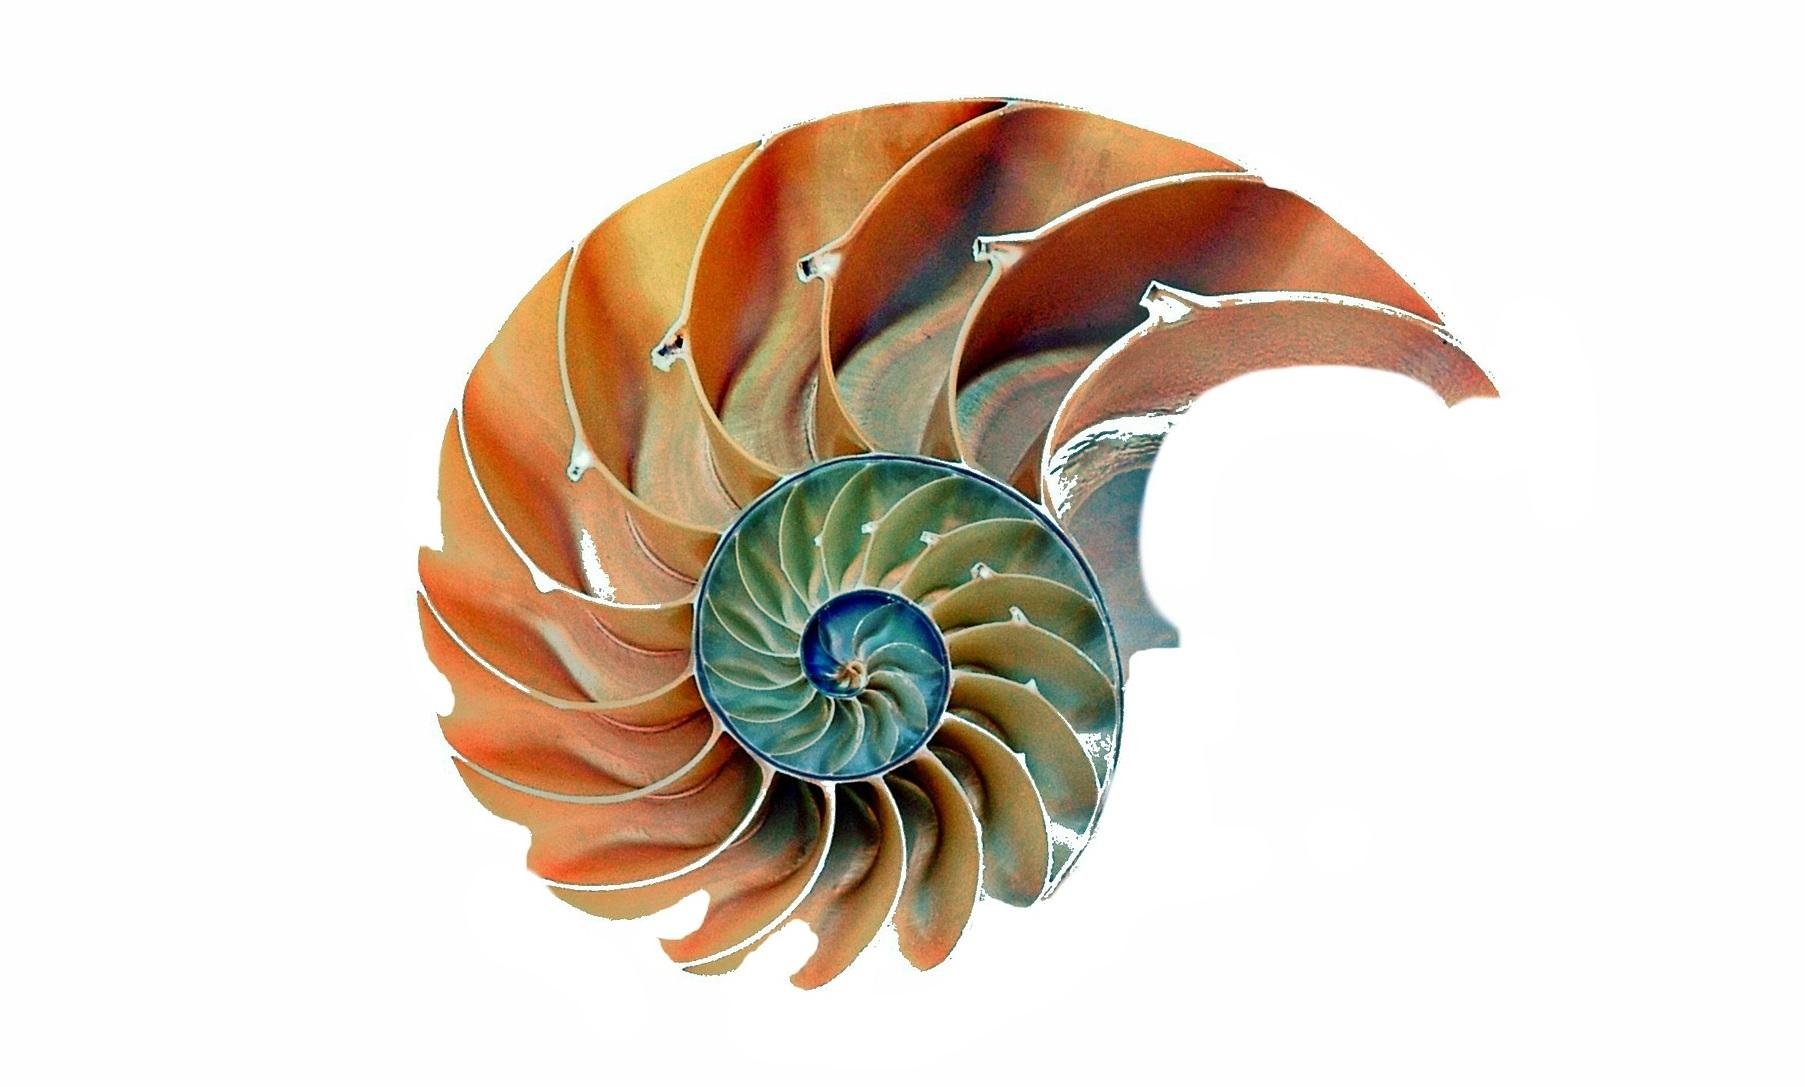 golden ratio nautilus shell